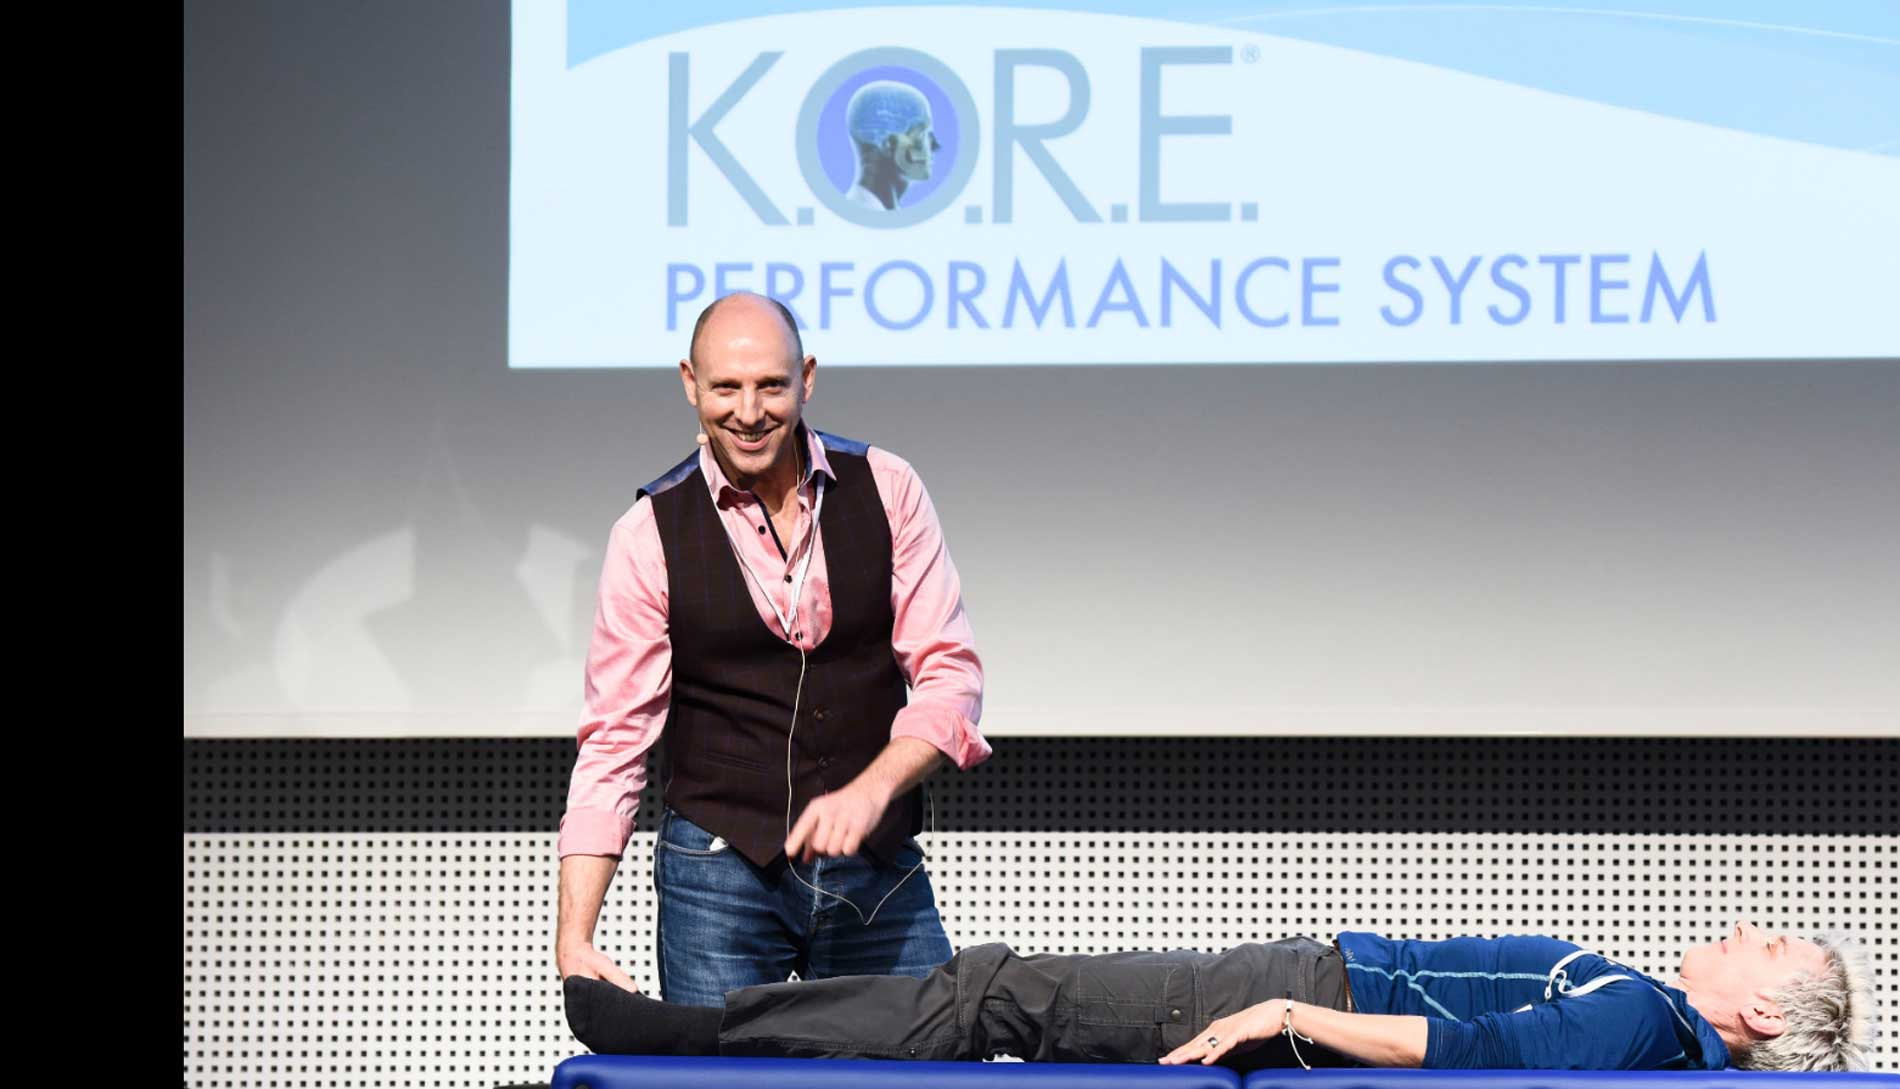 Dr John Brazier, Worldwide Health, Recovery & Performance System KORE Therapy